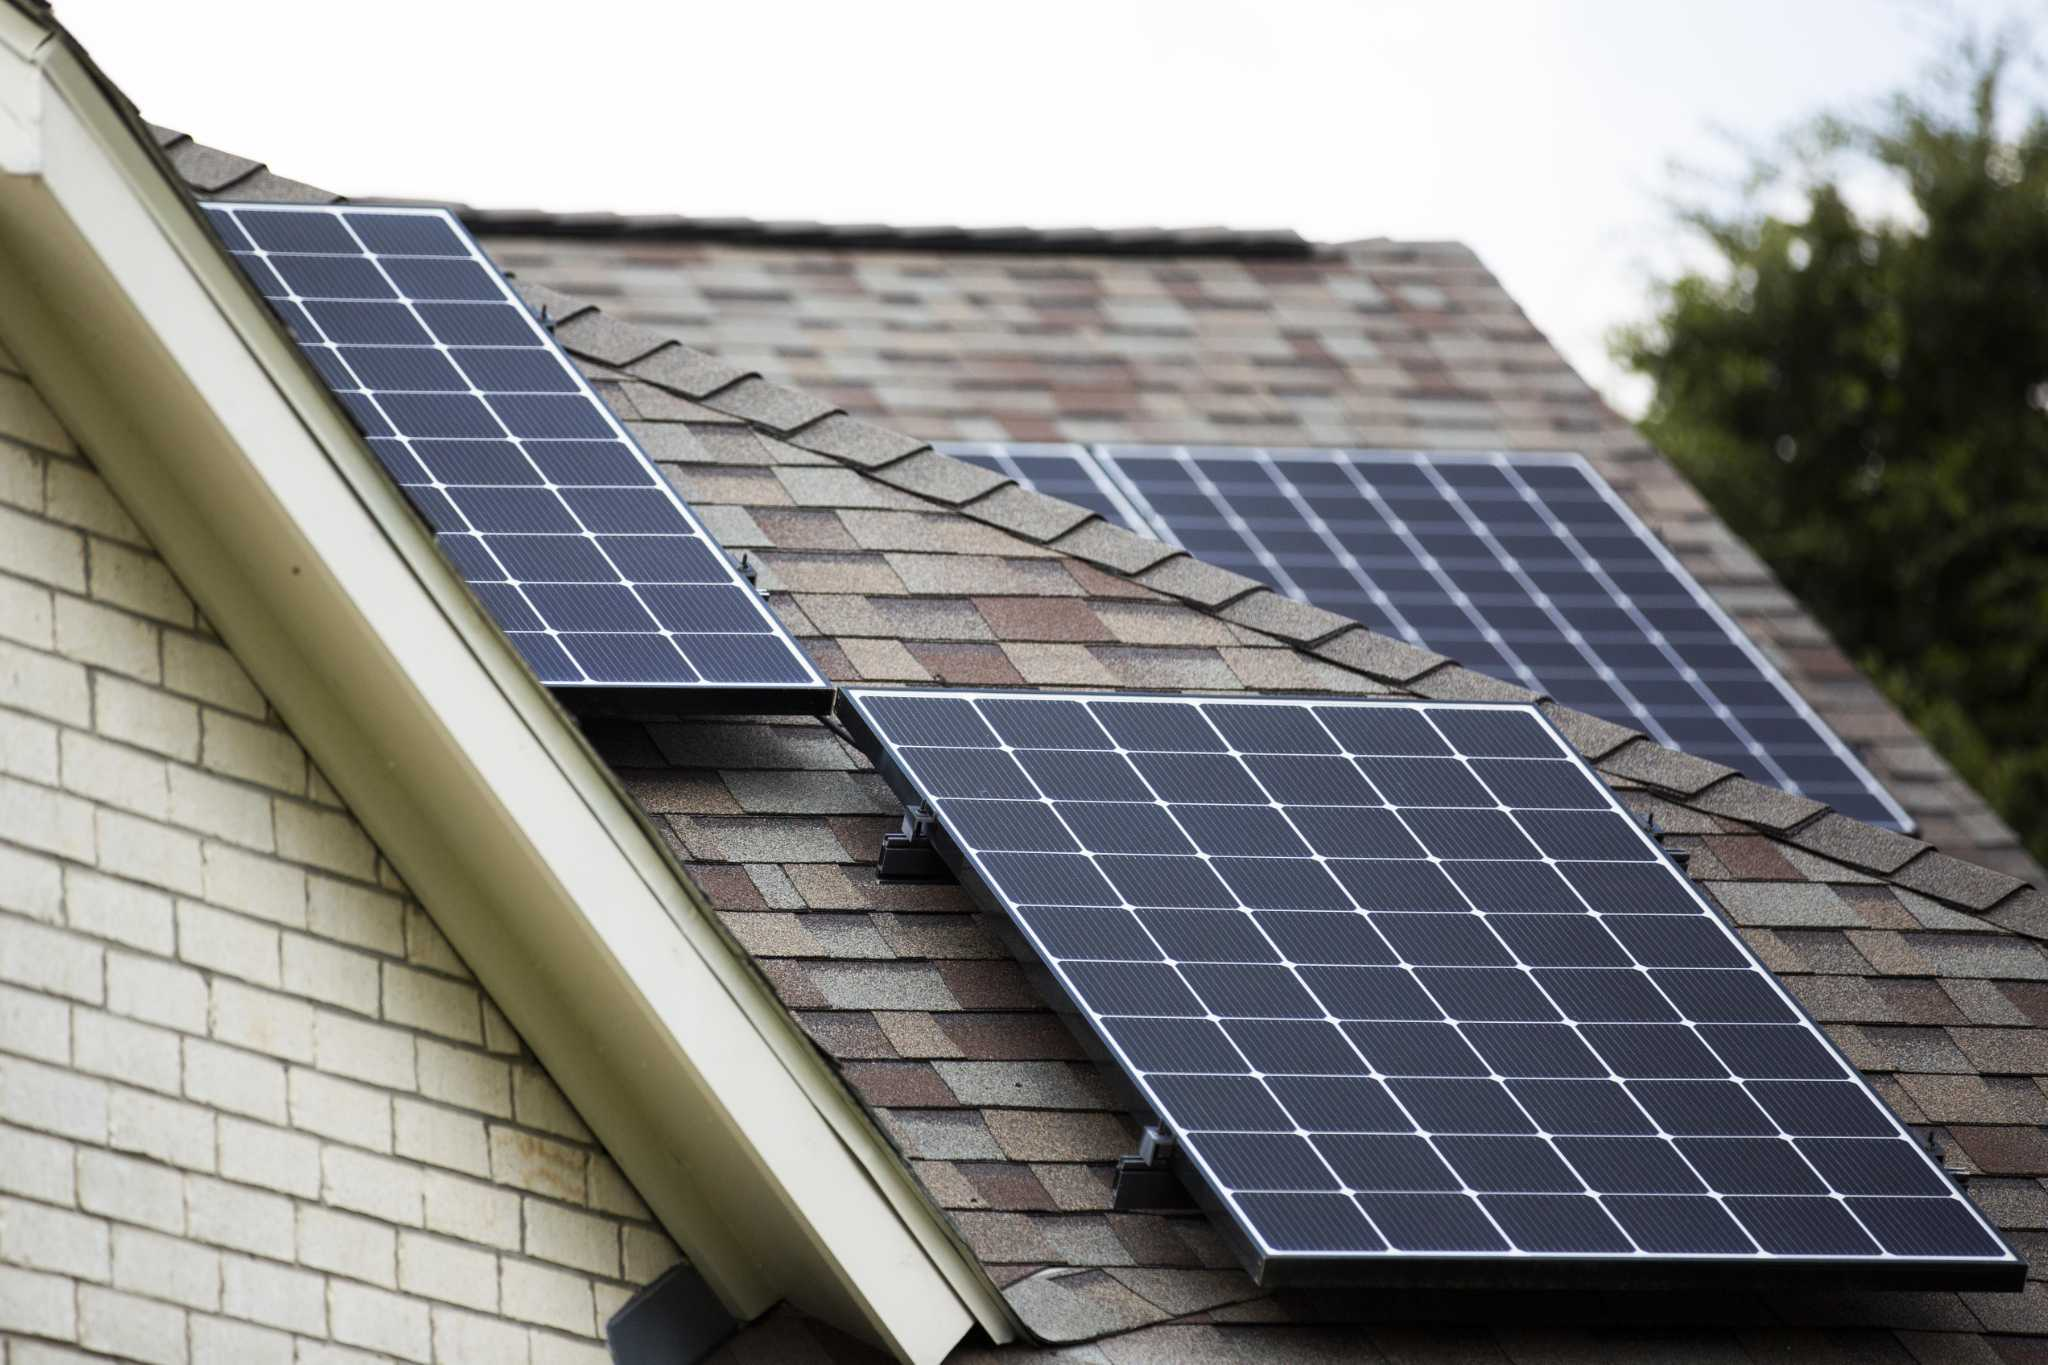 Rooftop solar picking up as Texans seek energy independence